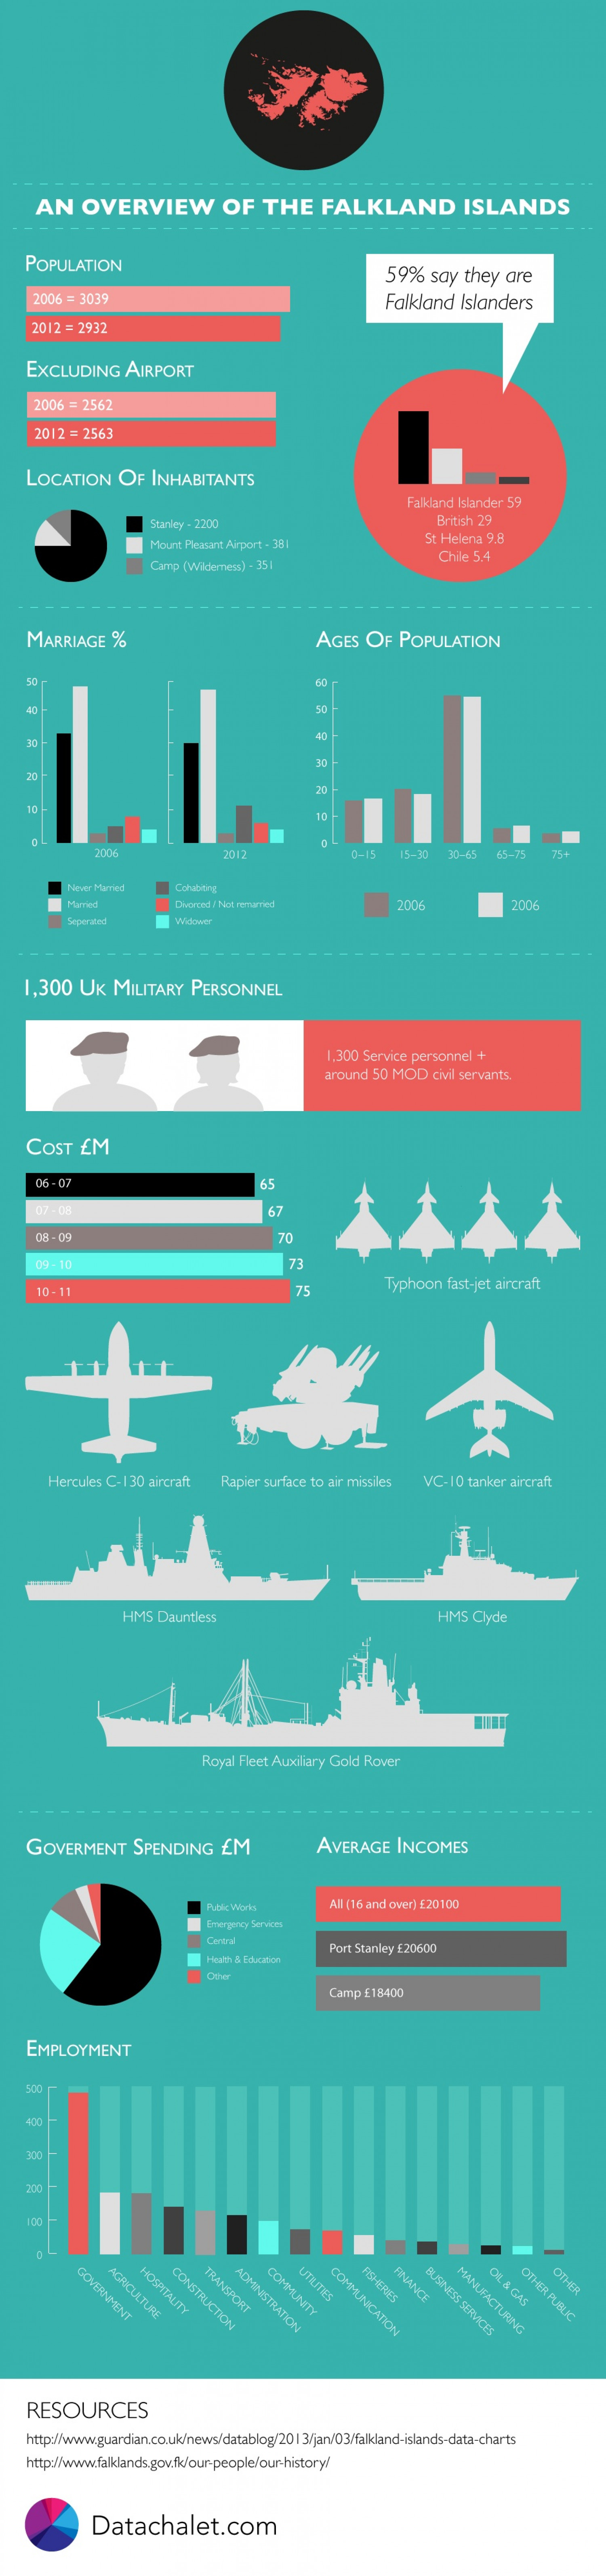 An overview of the Falkland Islands Infographic